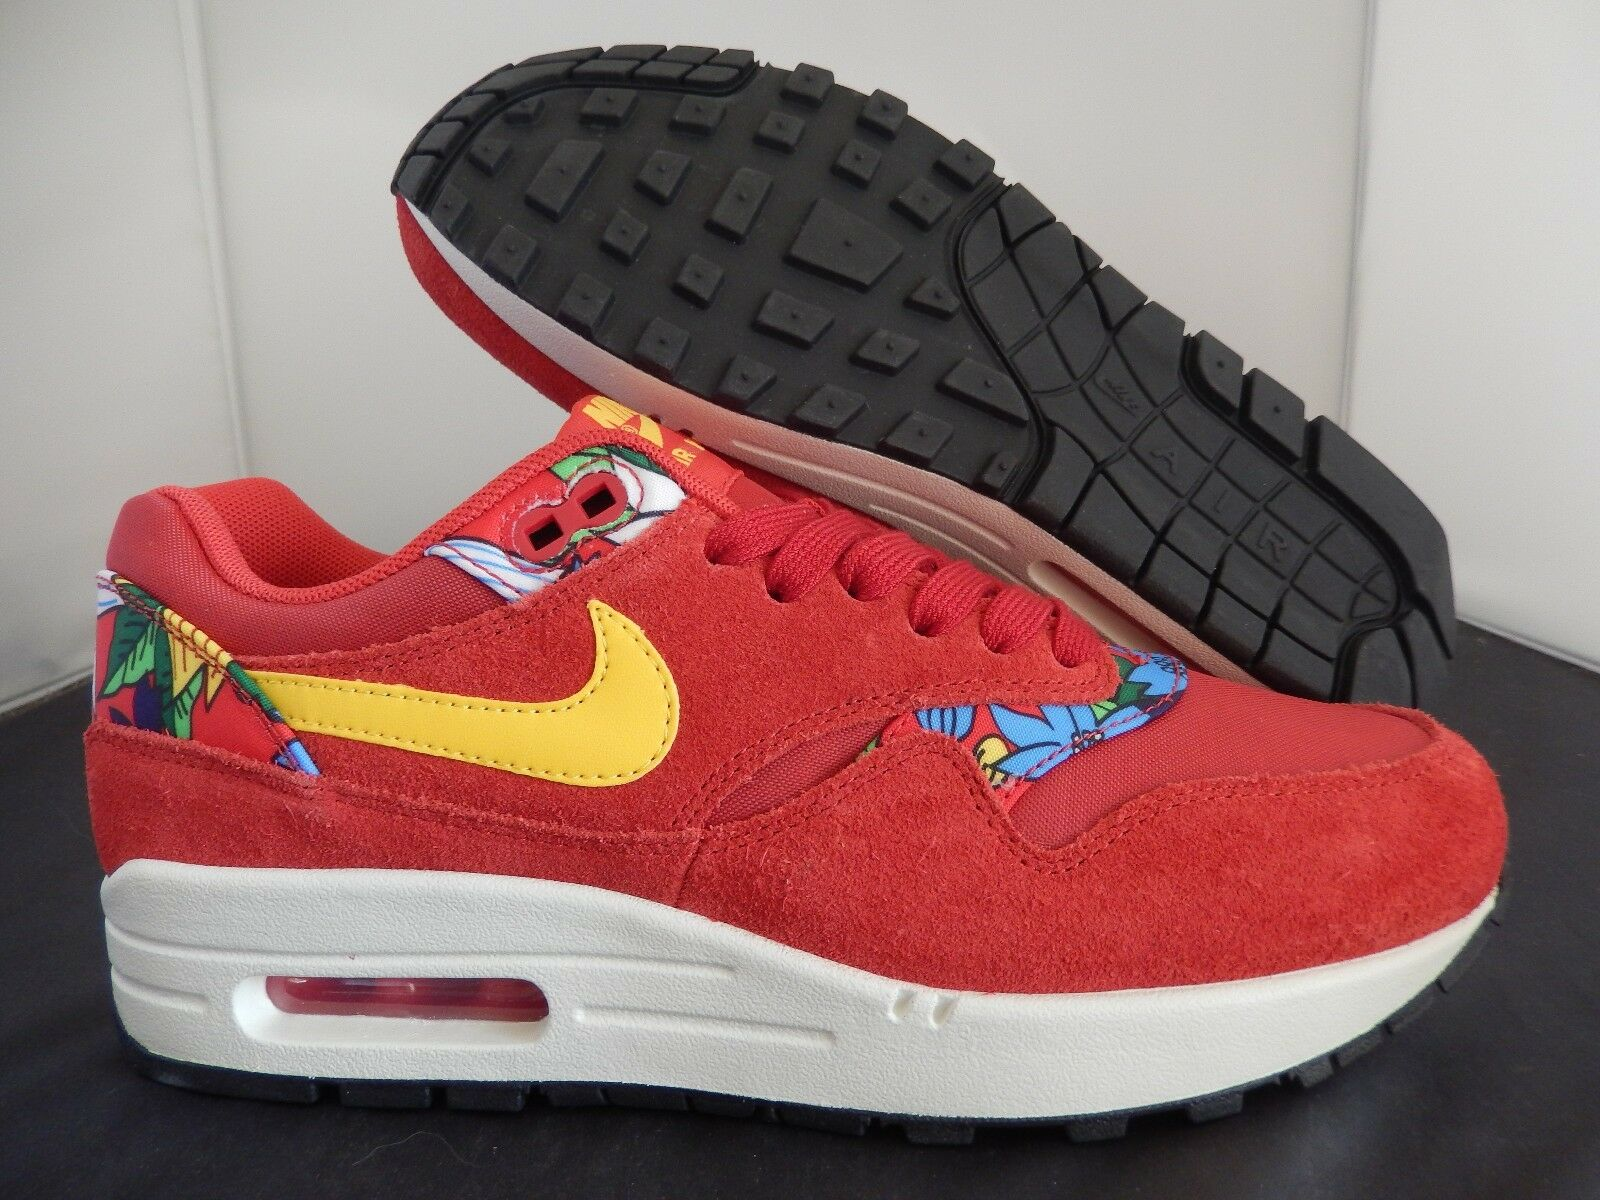 WMNS NIKE AIR MAX 1 PRINT FLORAL  ALOHA PACK  UNIVERSITY RED SZ 8 [528898-602]